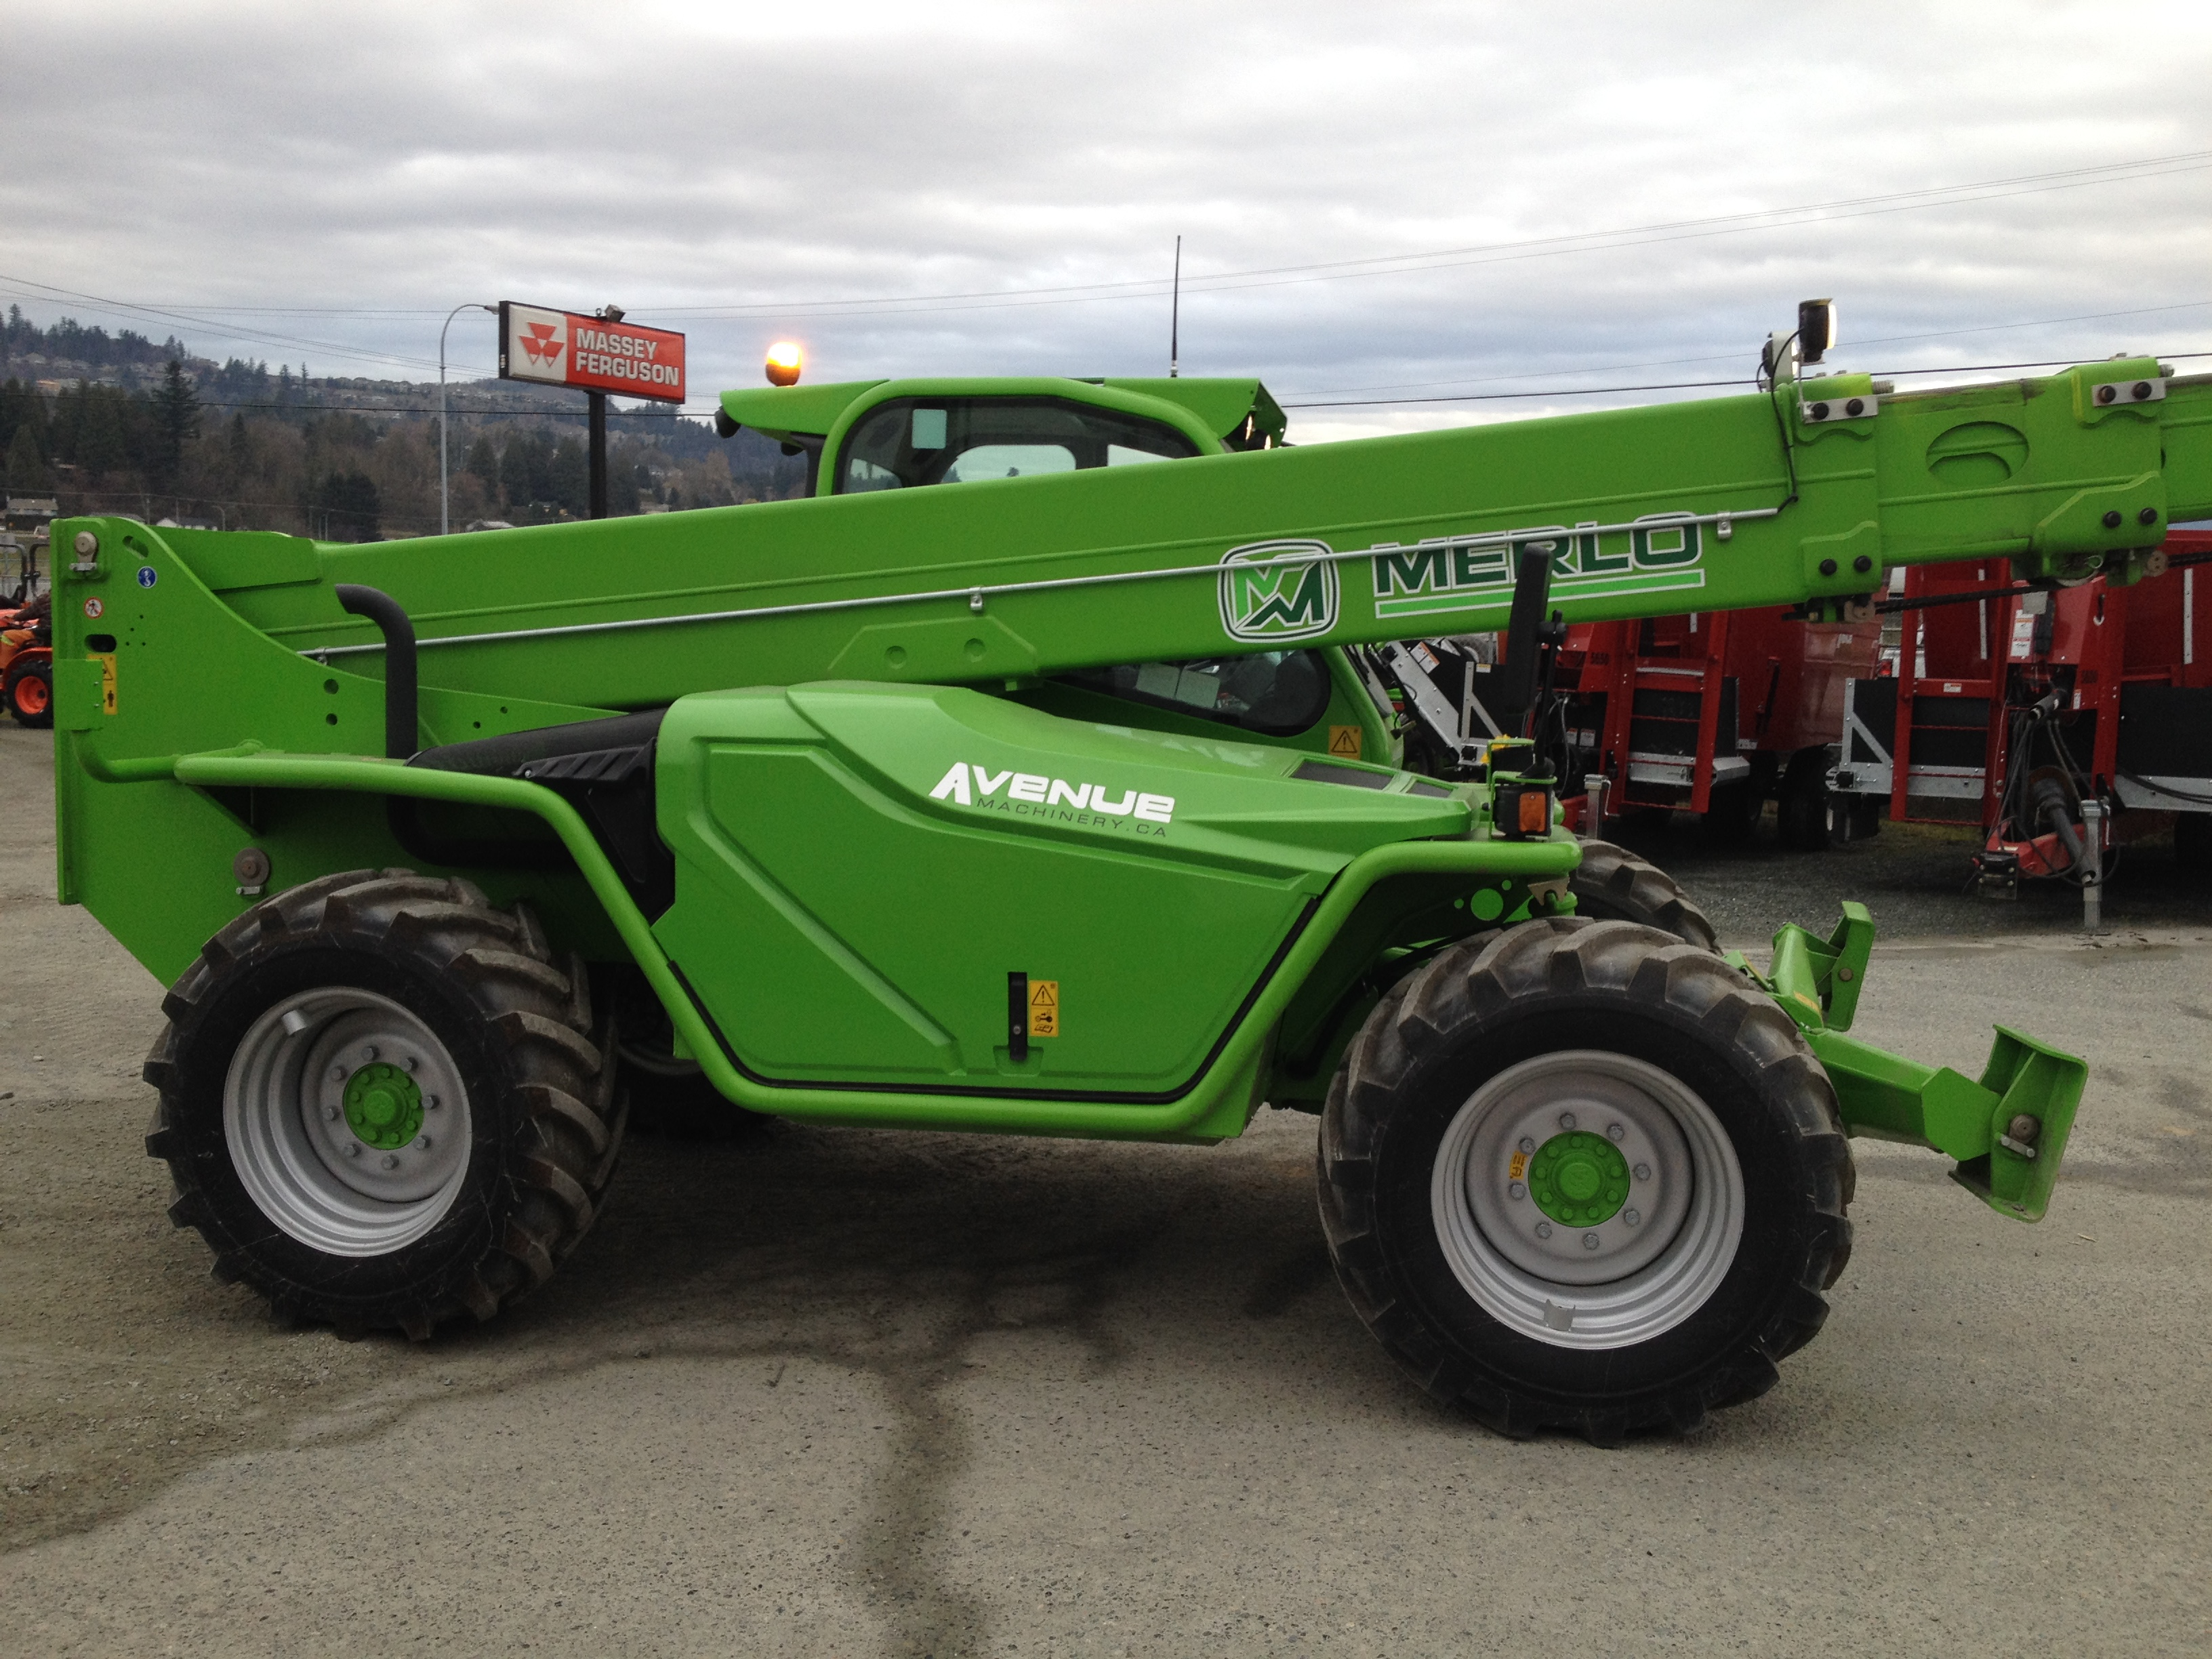 Merlo 40 17 TeleHandler for sale in Abbotsford, BC | IronSearch